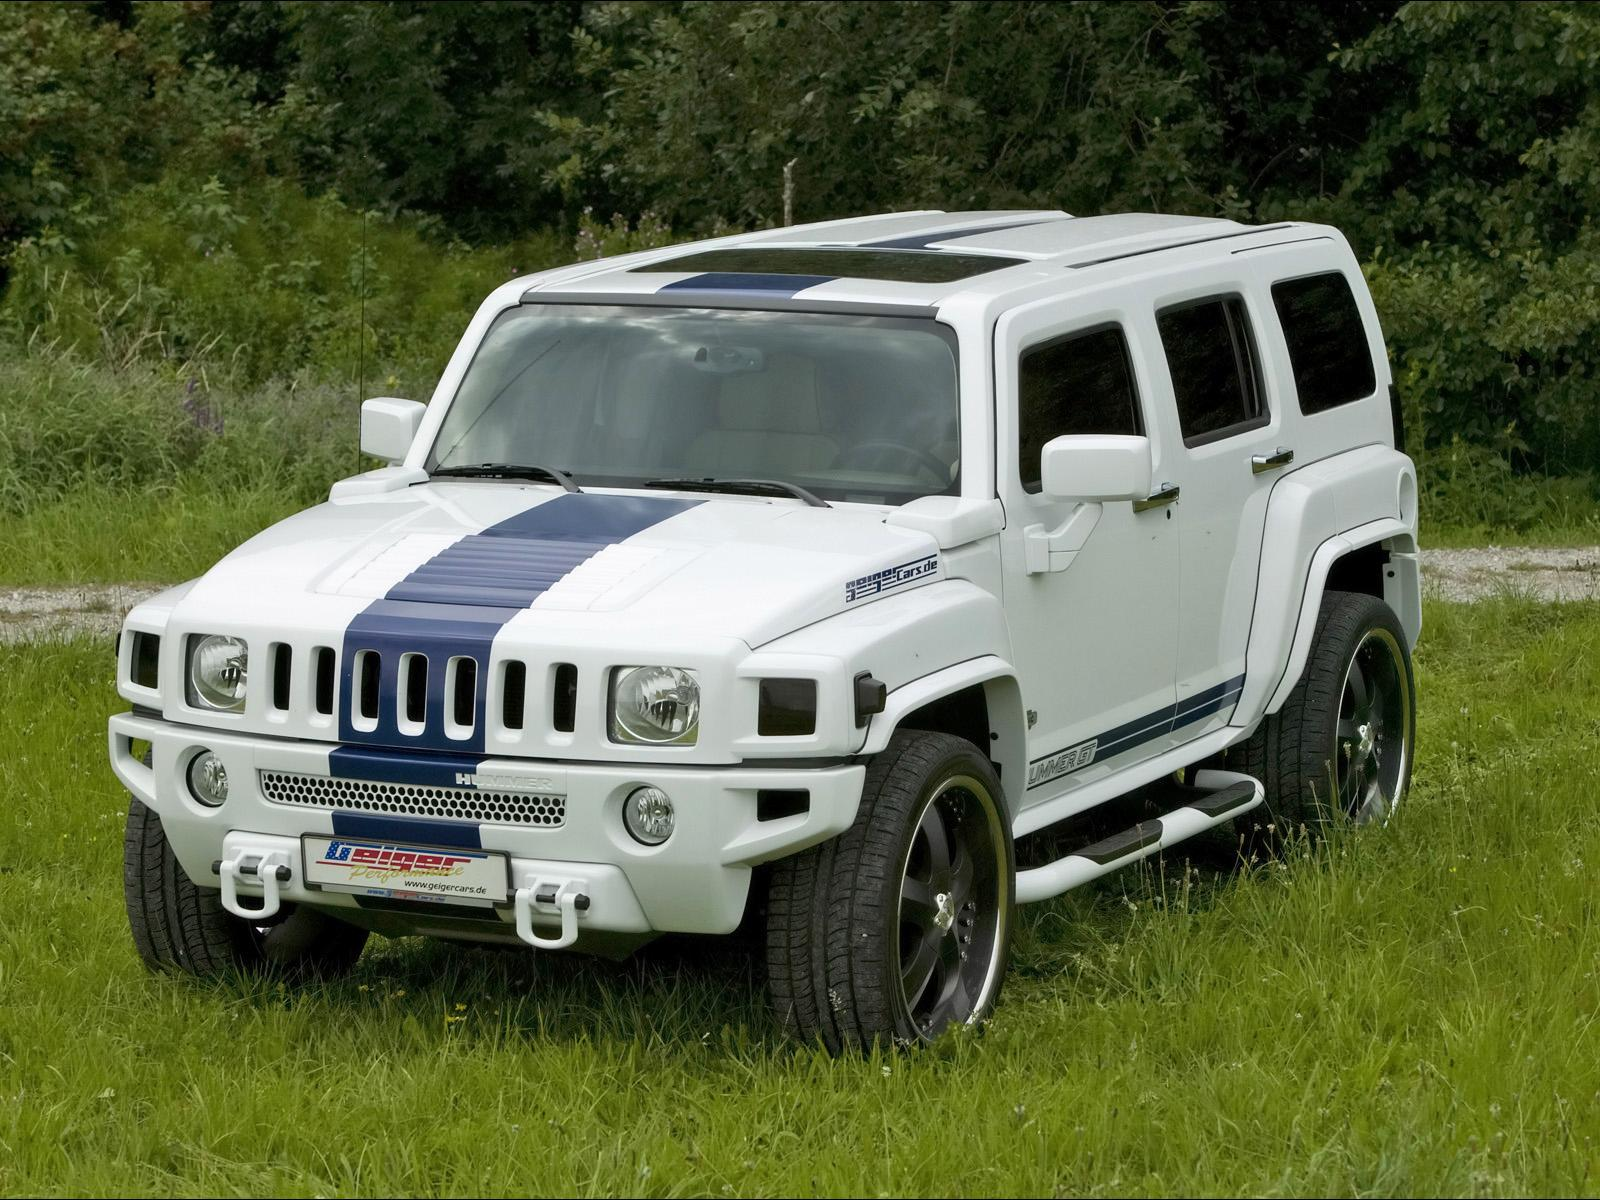 2008 Hummer H3 Gt By Geigercars Review Top Speed